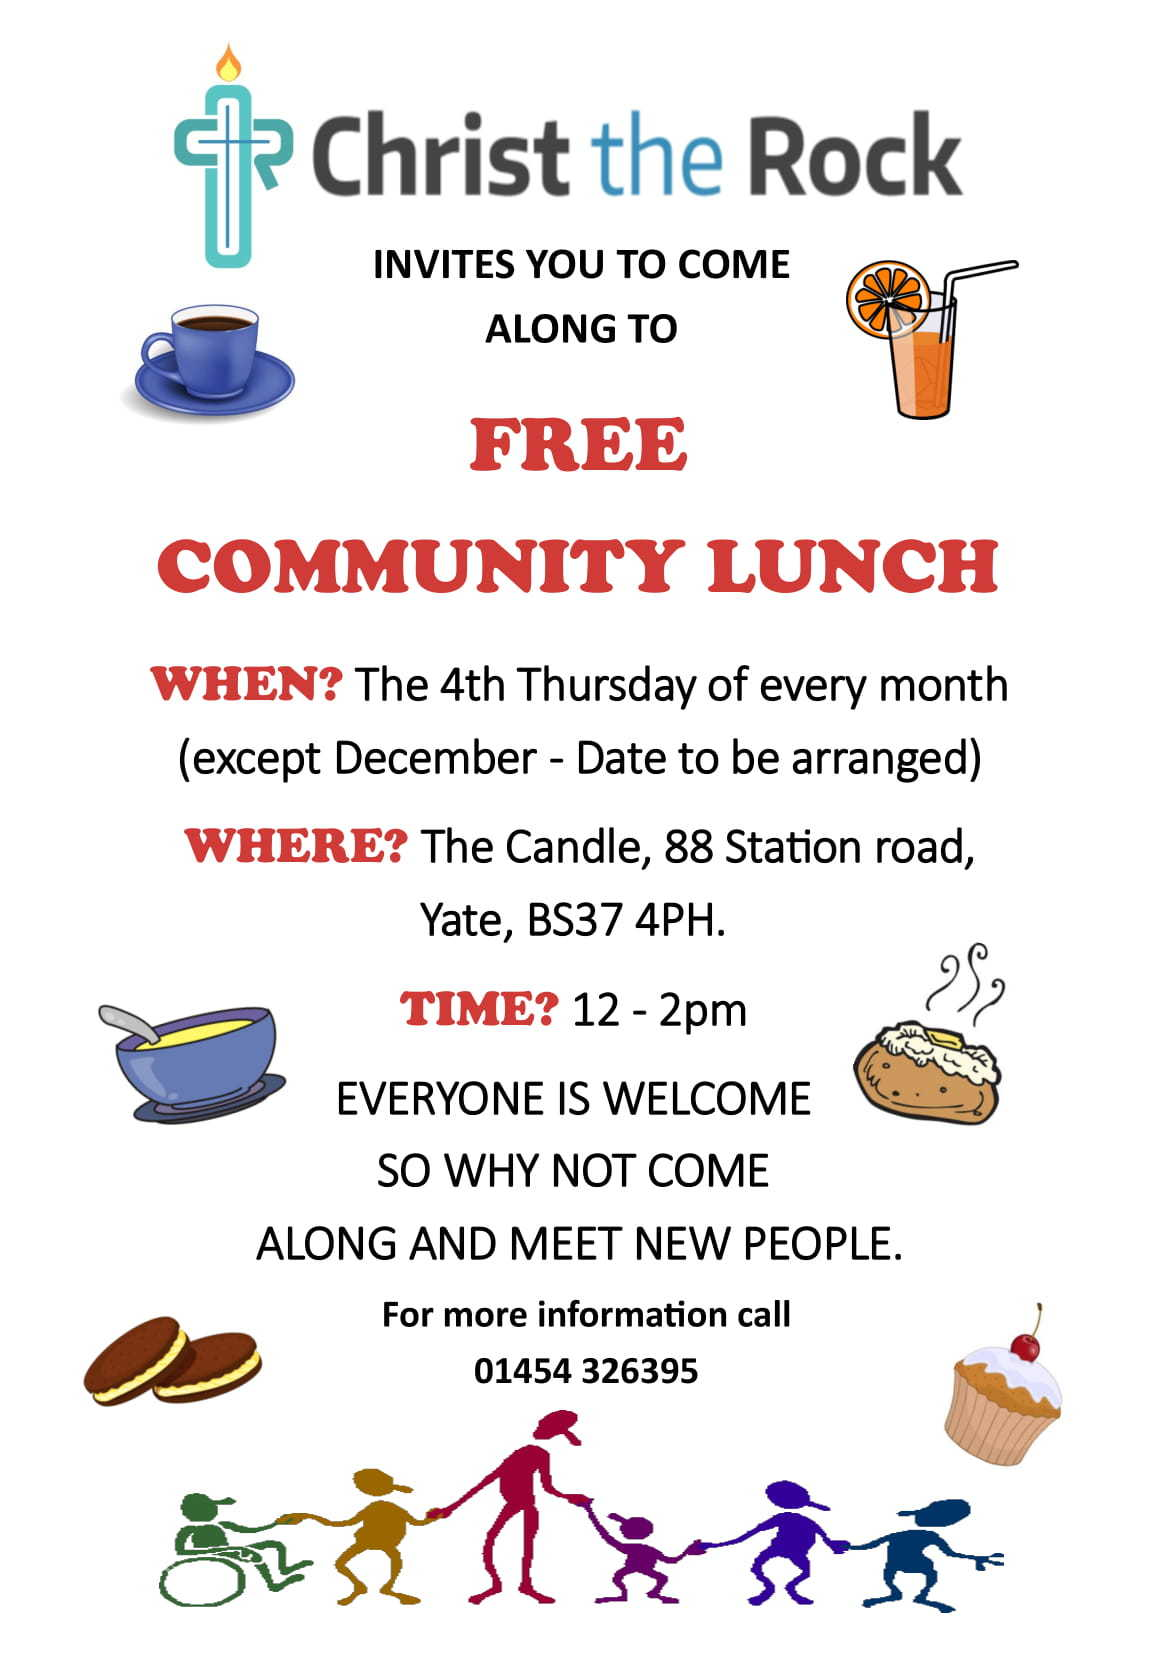 Community-Lunch-Flyer-1.jpg#asset:841